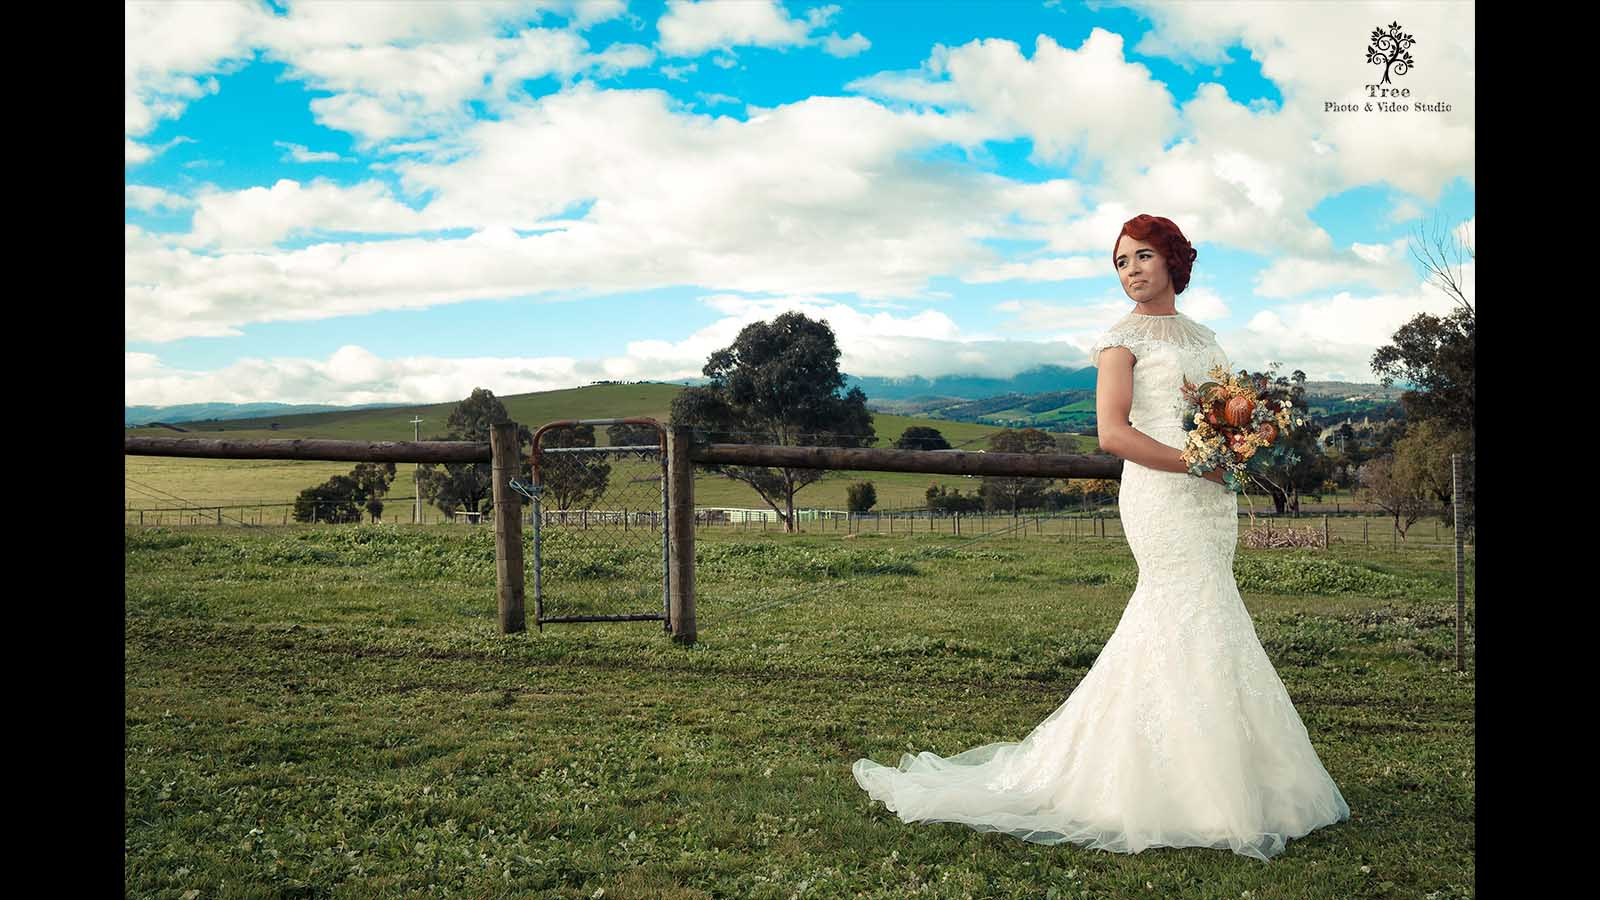 Yarra Vally Wedding Photo